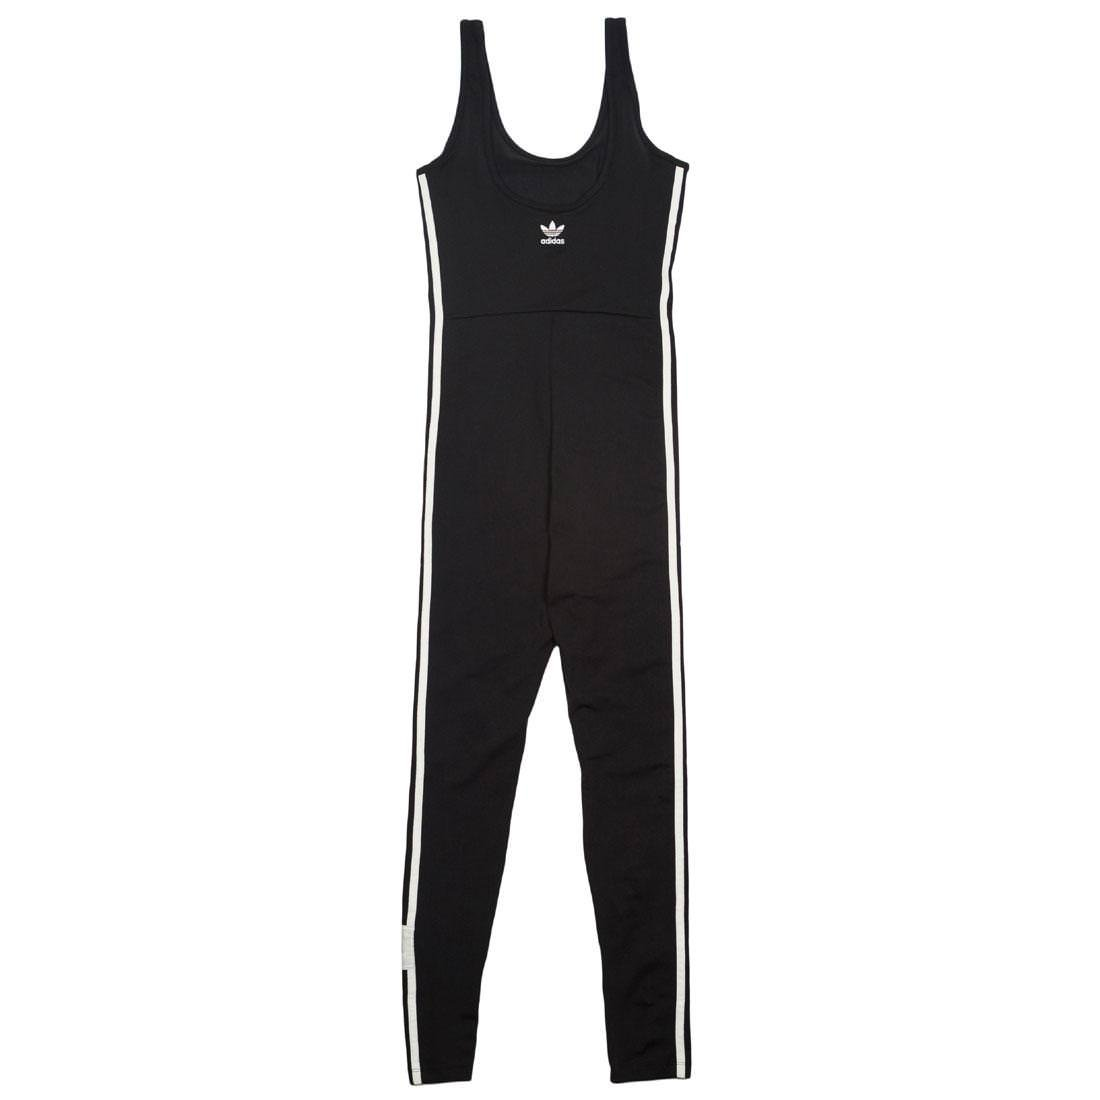 adidas Women Clothing Adibreak Jumpsuit CE4173 (XS)